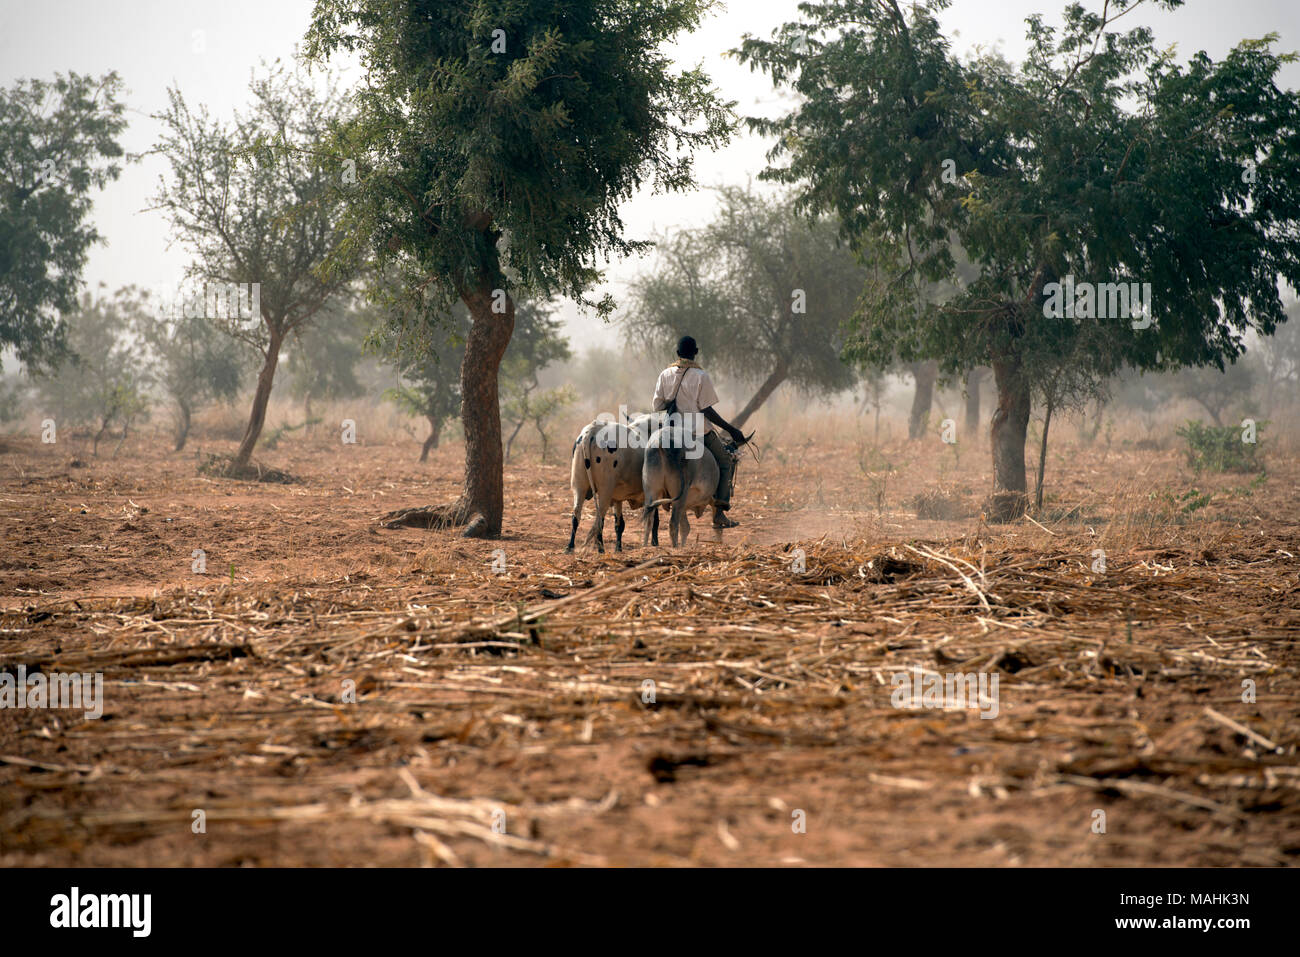 An indigenous Dogon tribe man takes his oxen to a field for the day's work. Dogon country, Mali, West Africa. - Stock Image